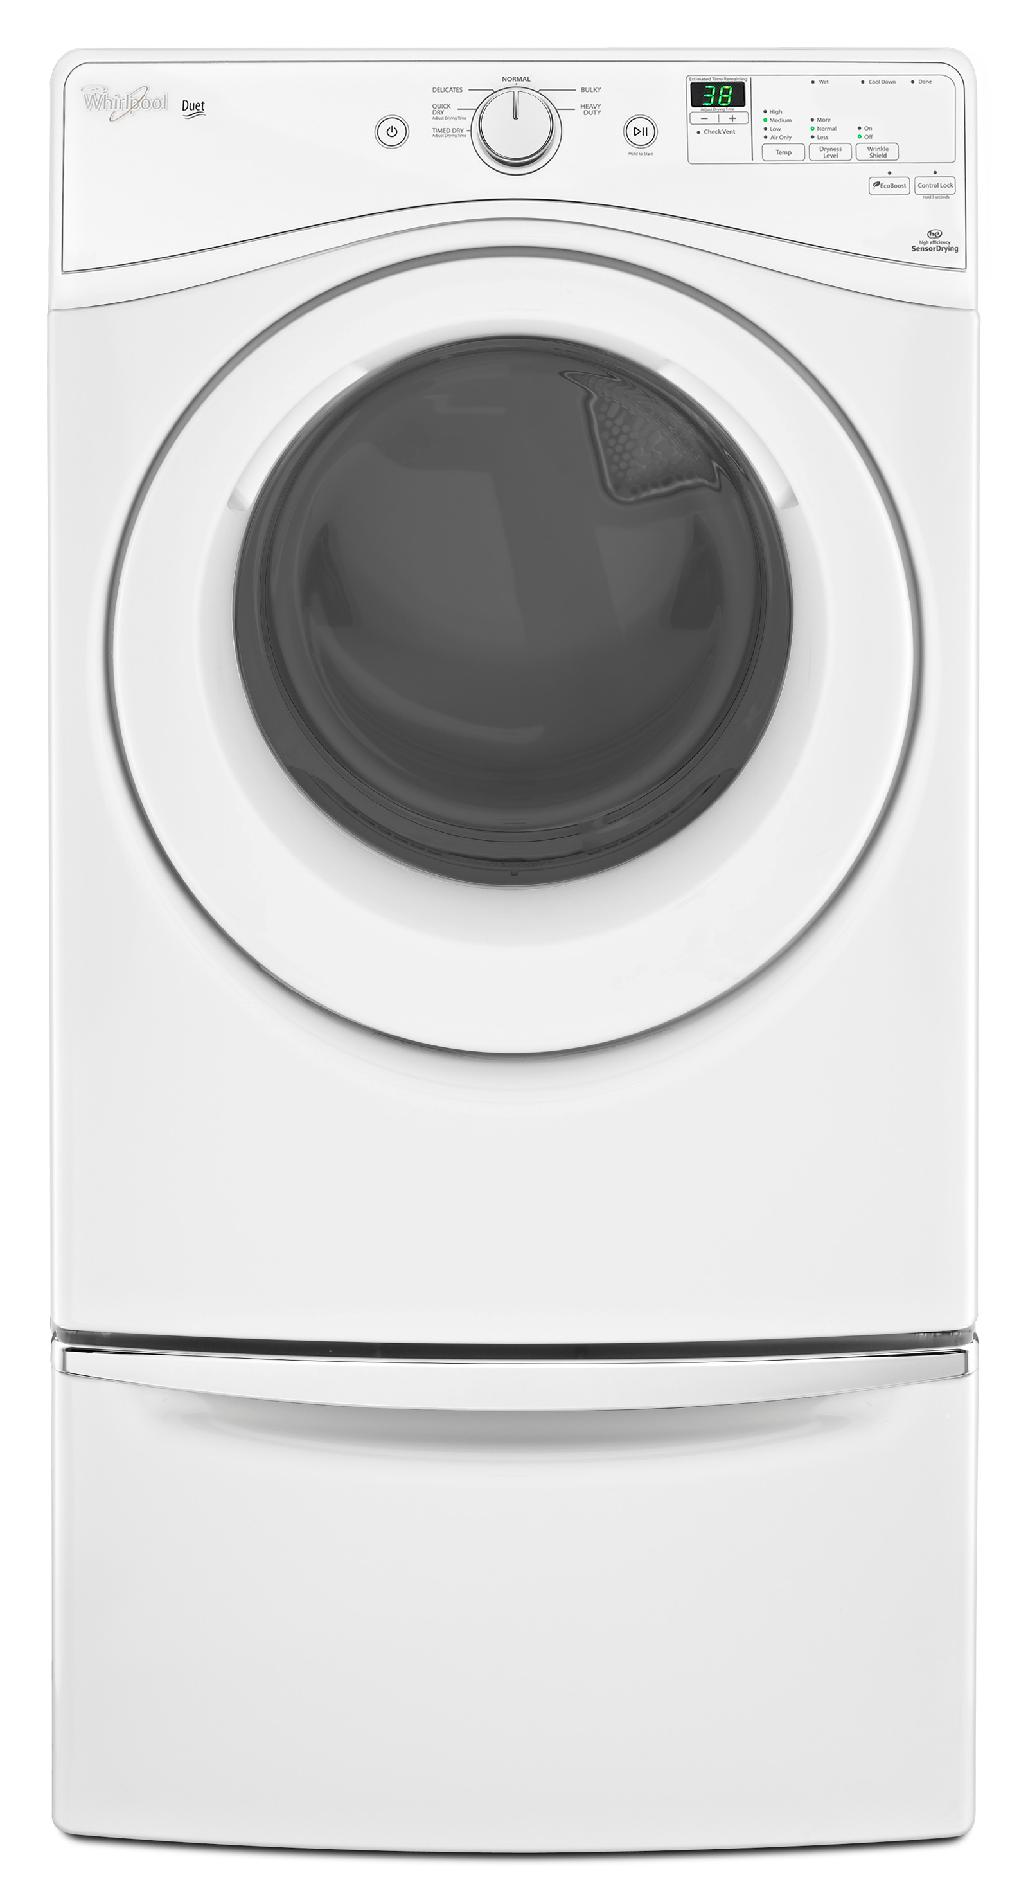 Whirlpool WGD72HEDW 7.4 cu. ft. Duet® Gas Dryer w/ EcoBoost™ - White